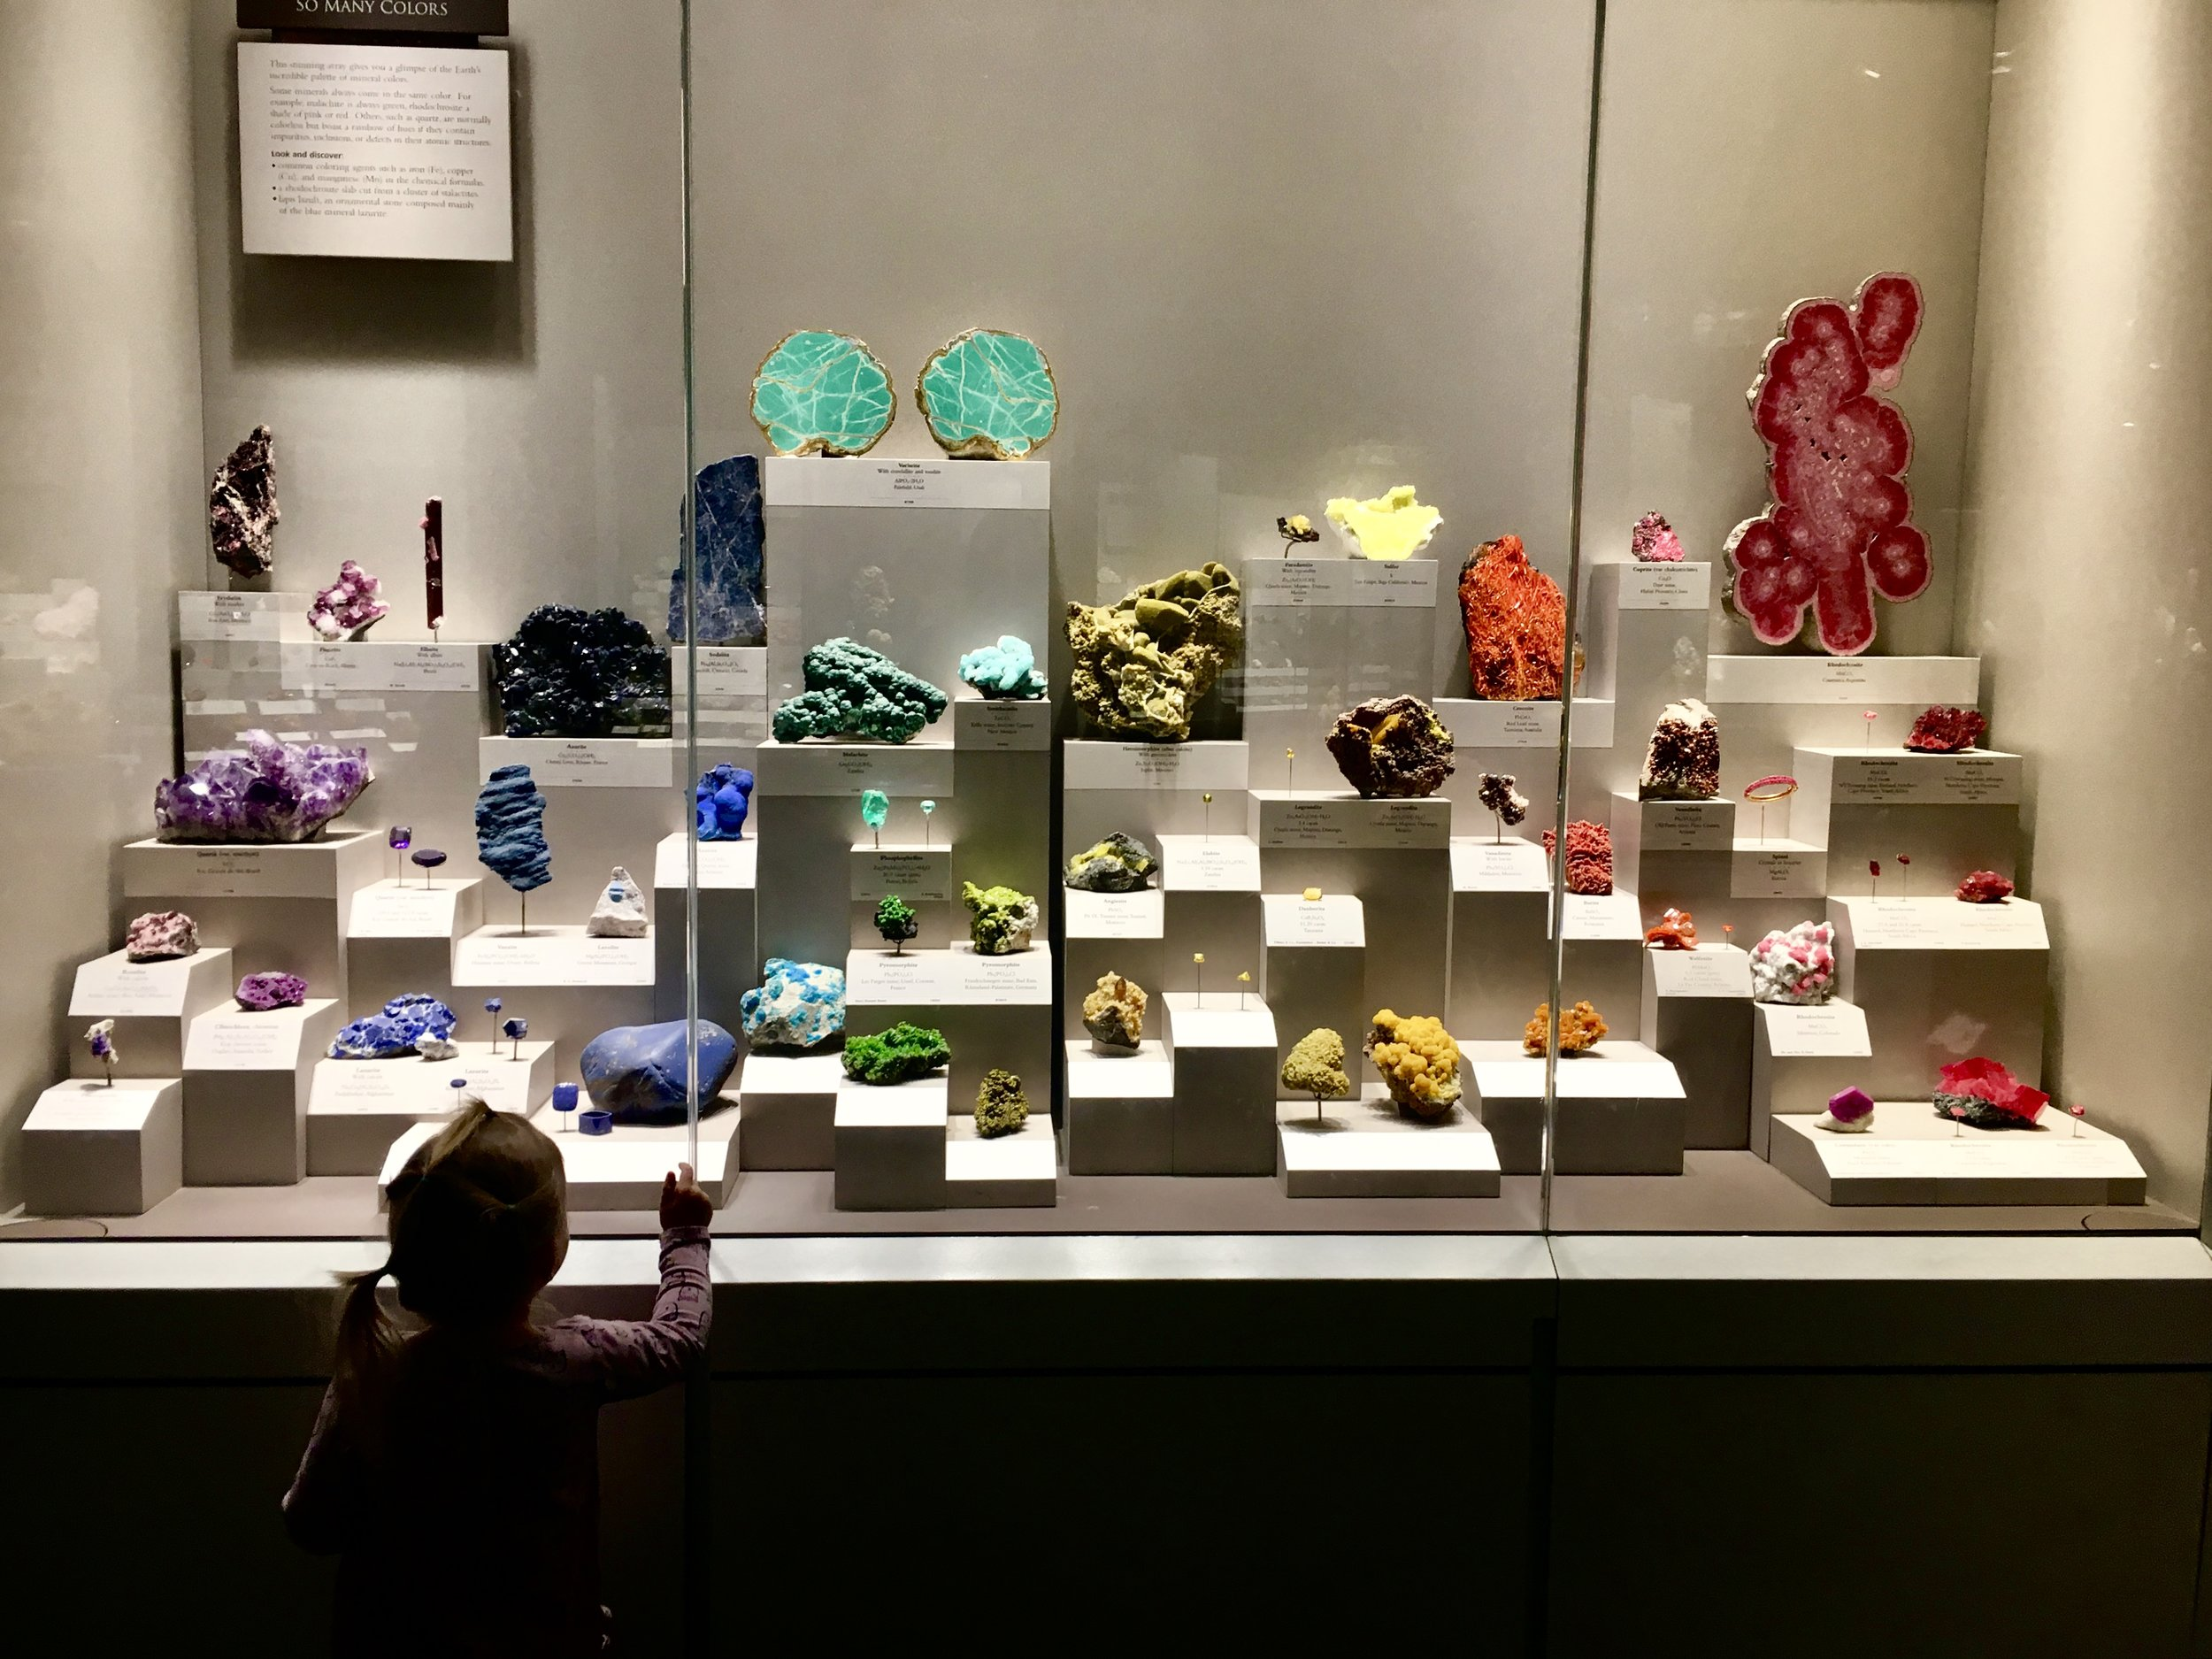 Image: A toddler in front of a display of colorful rocks and minerals